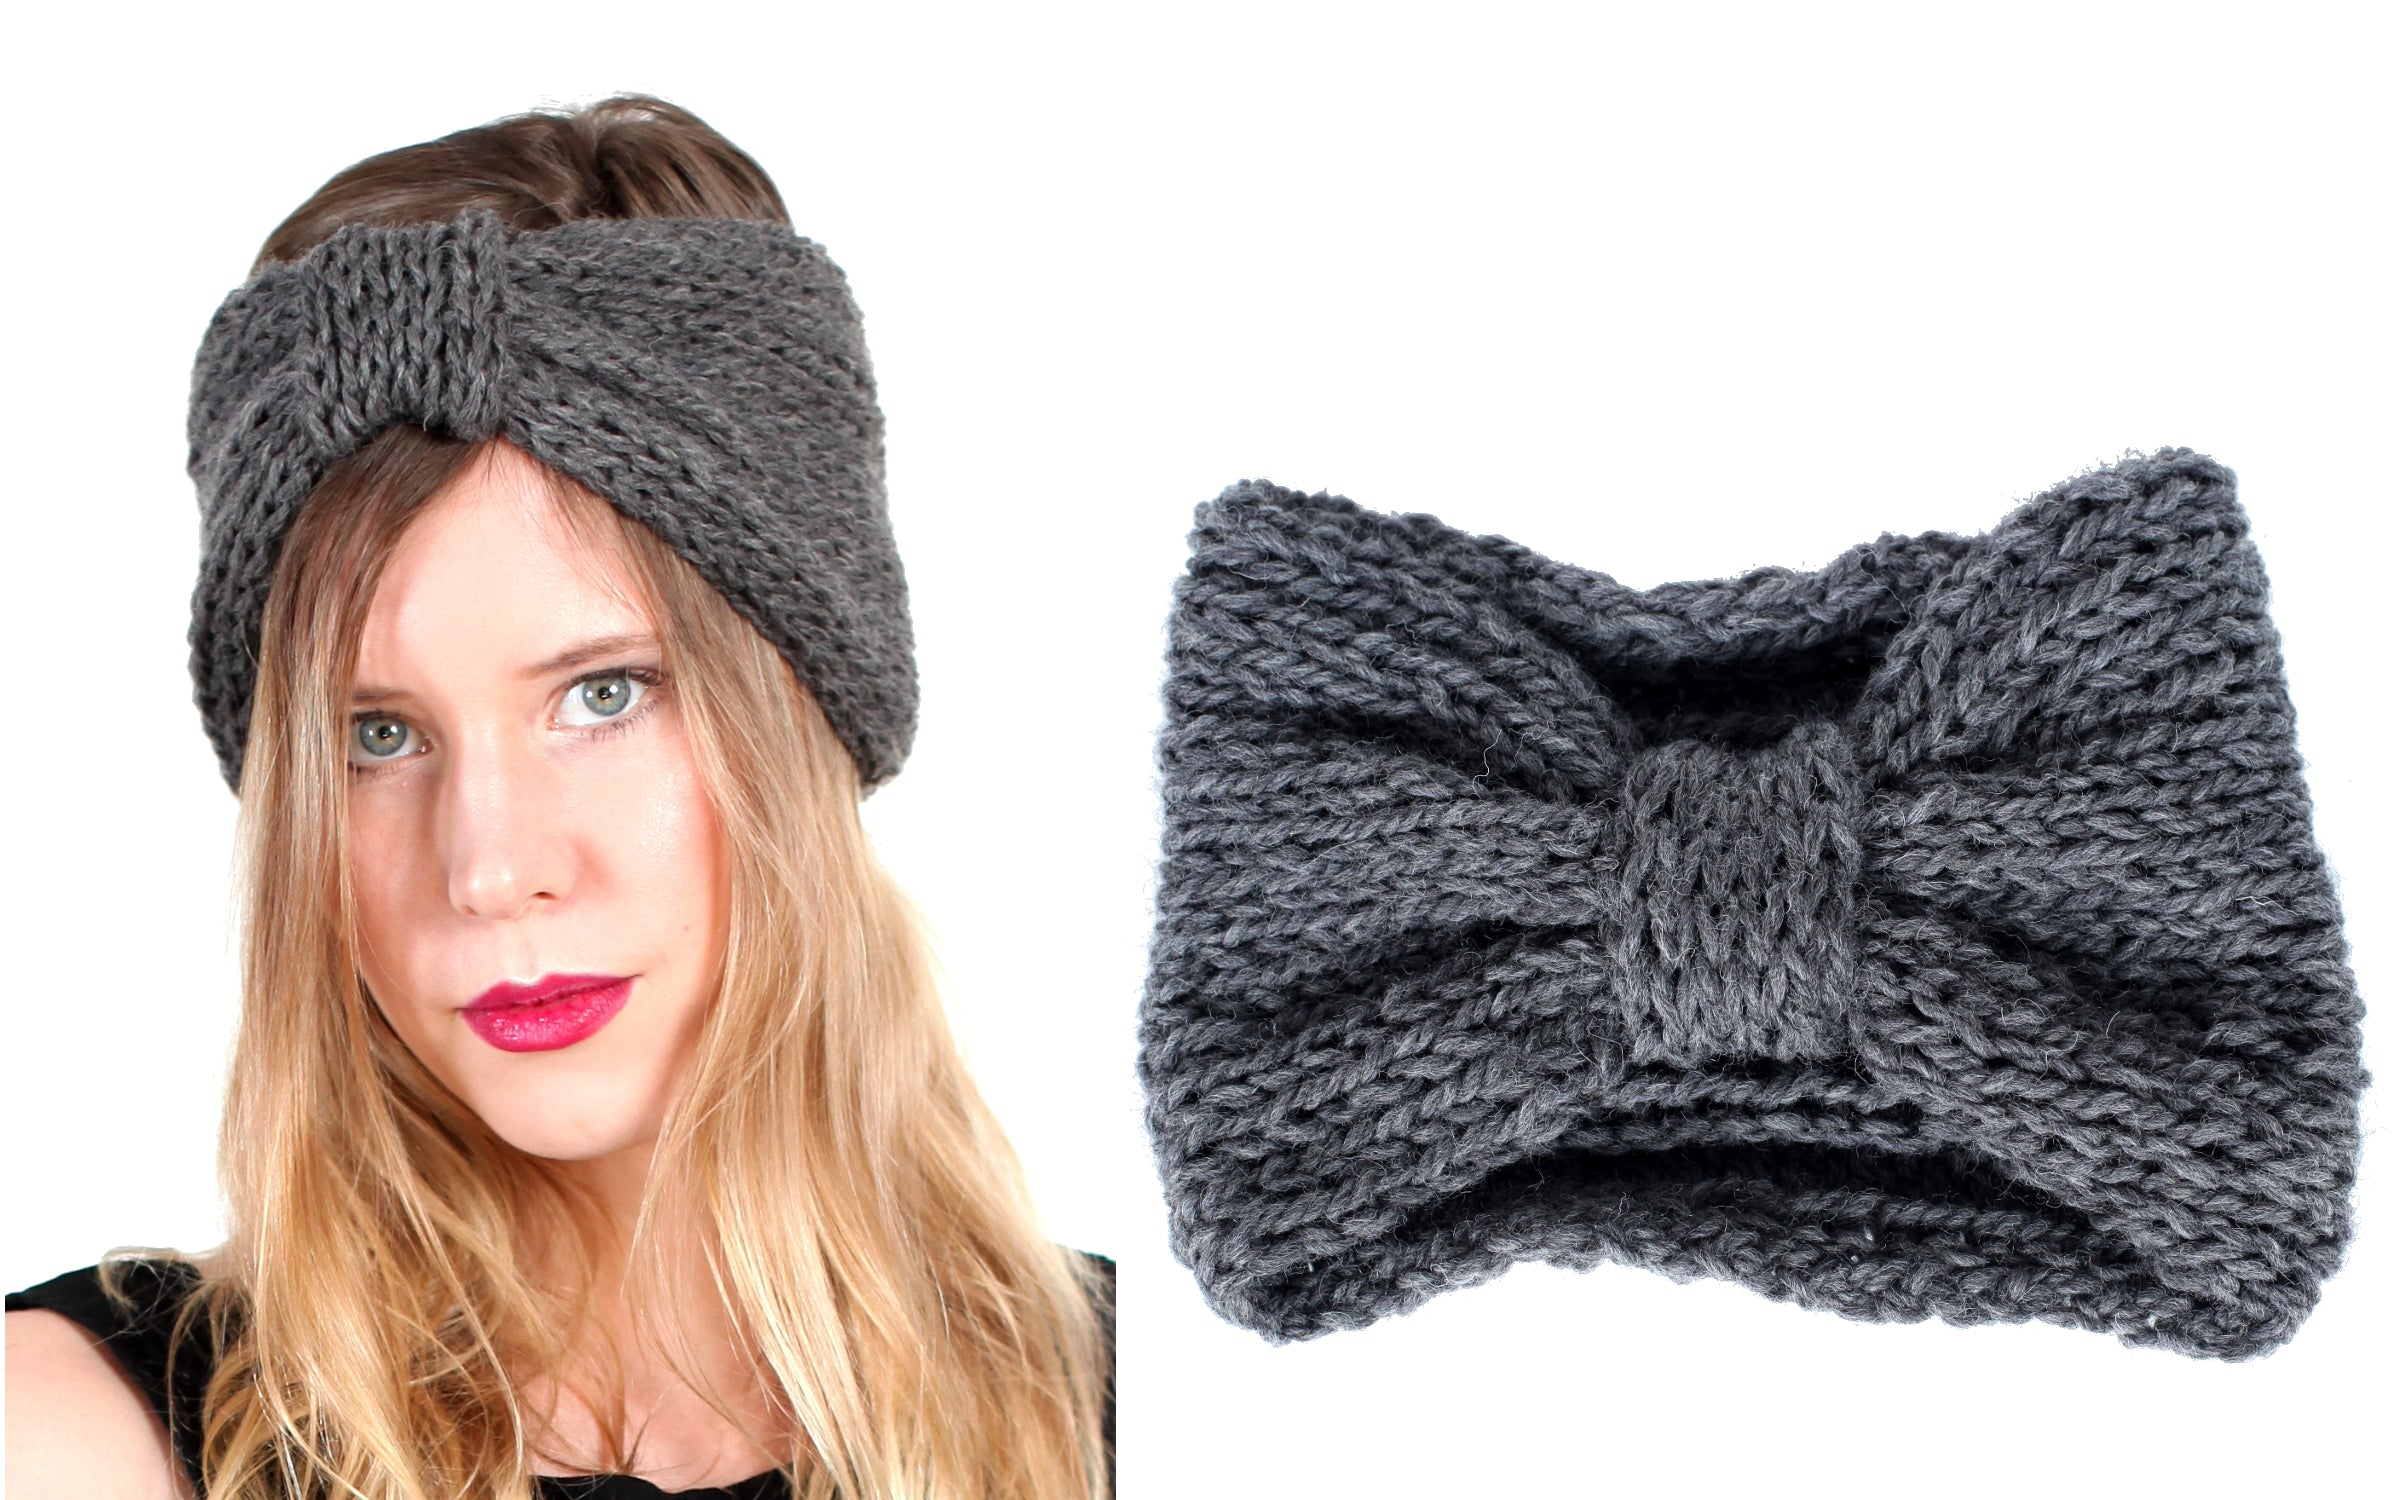 Westlake Bow Headband Knit Kit